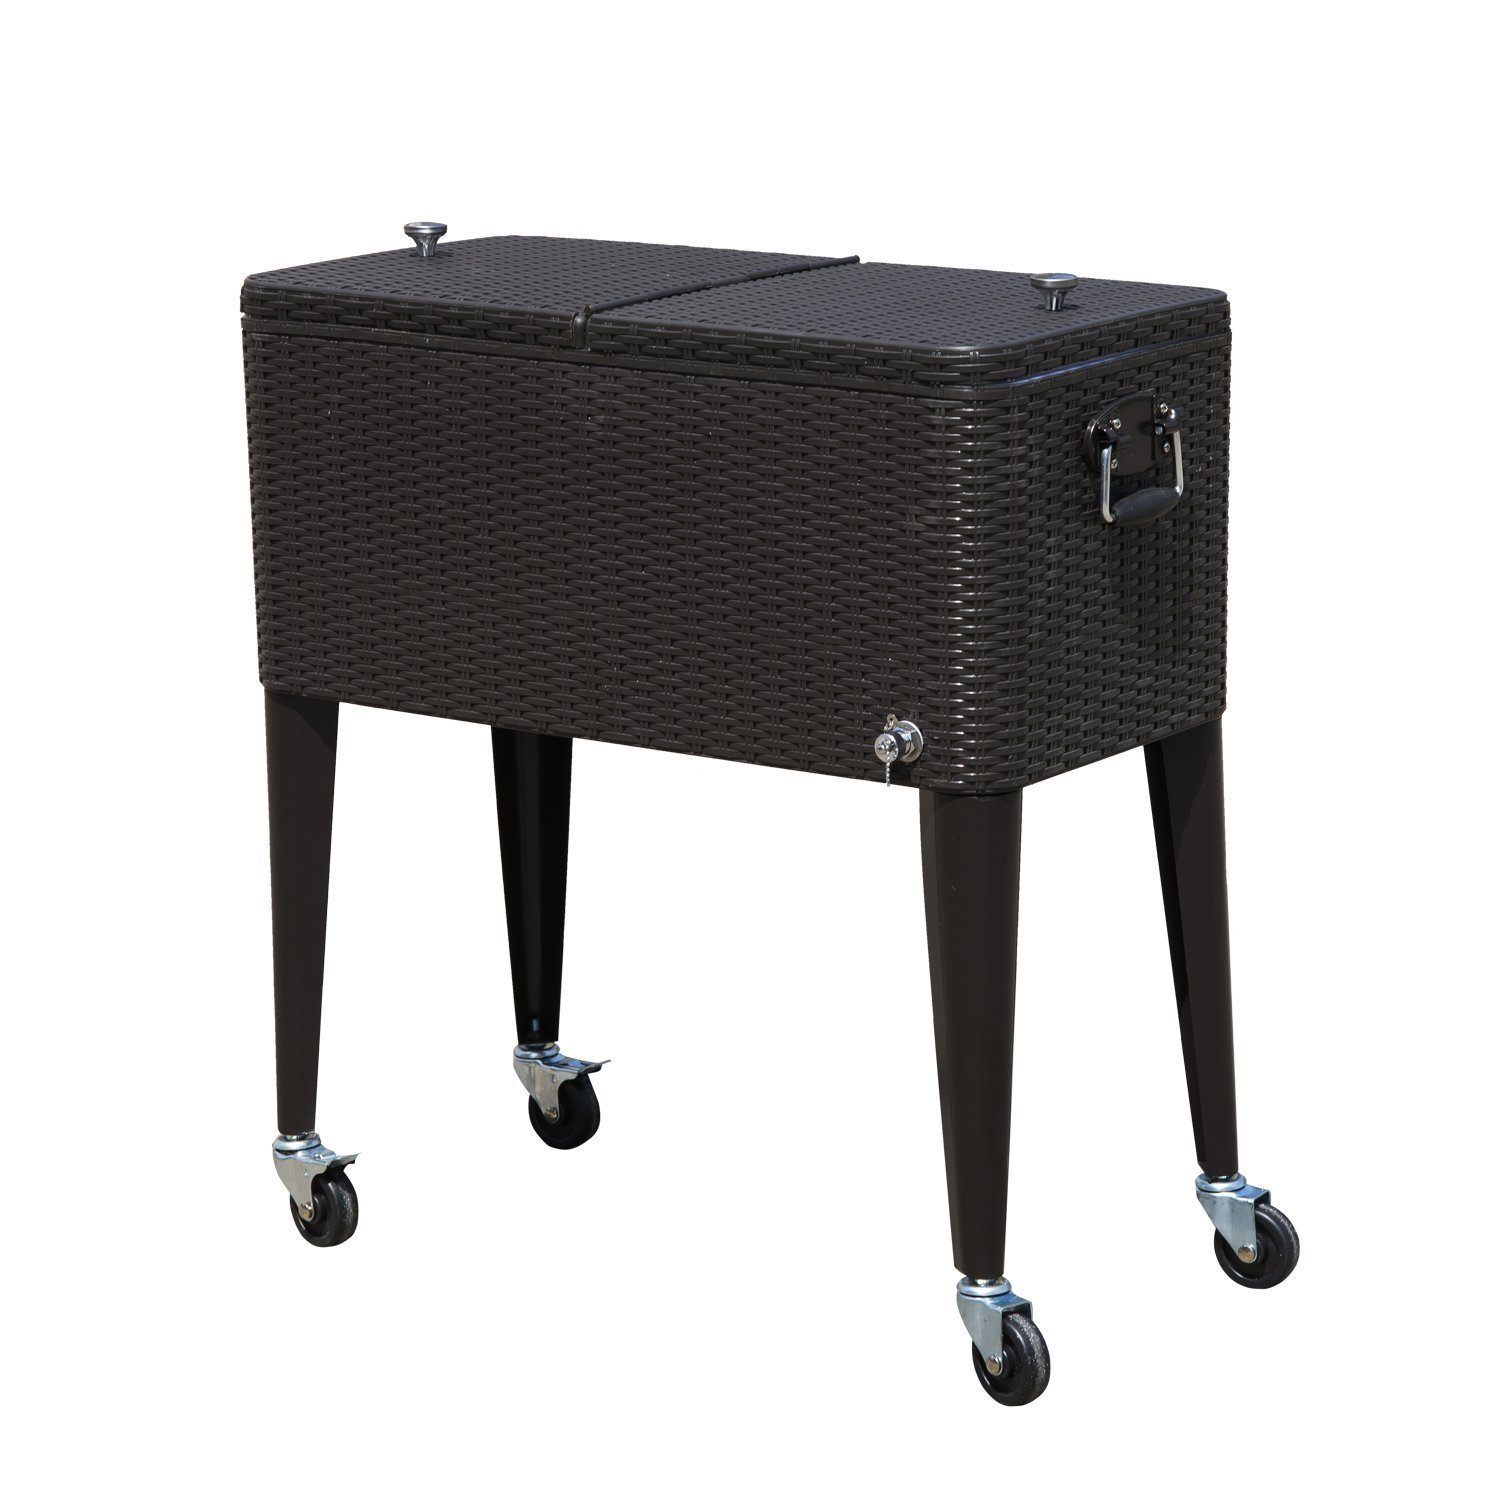 Tenive 80-quart Rolling Wheels Ice Chest Portable Patio Party Bar Drink Entertaining Outdoor Cooler Cart - Brown Wicker Pattern